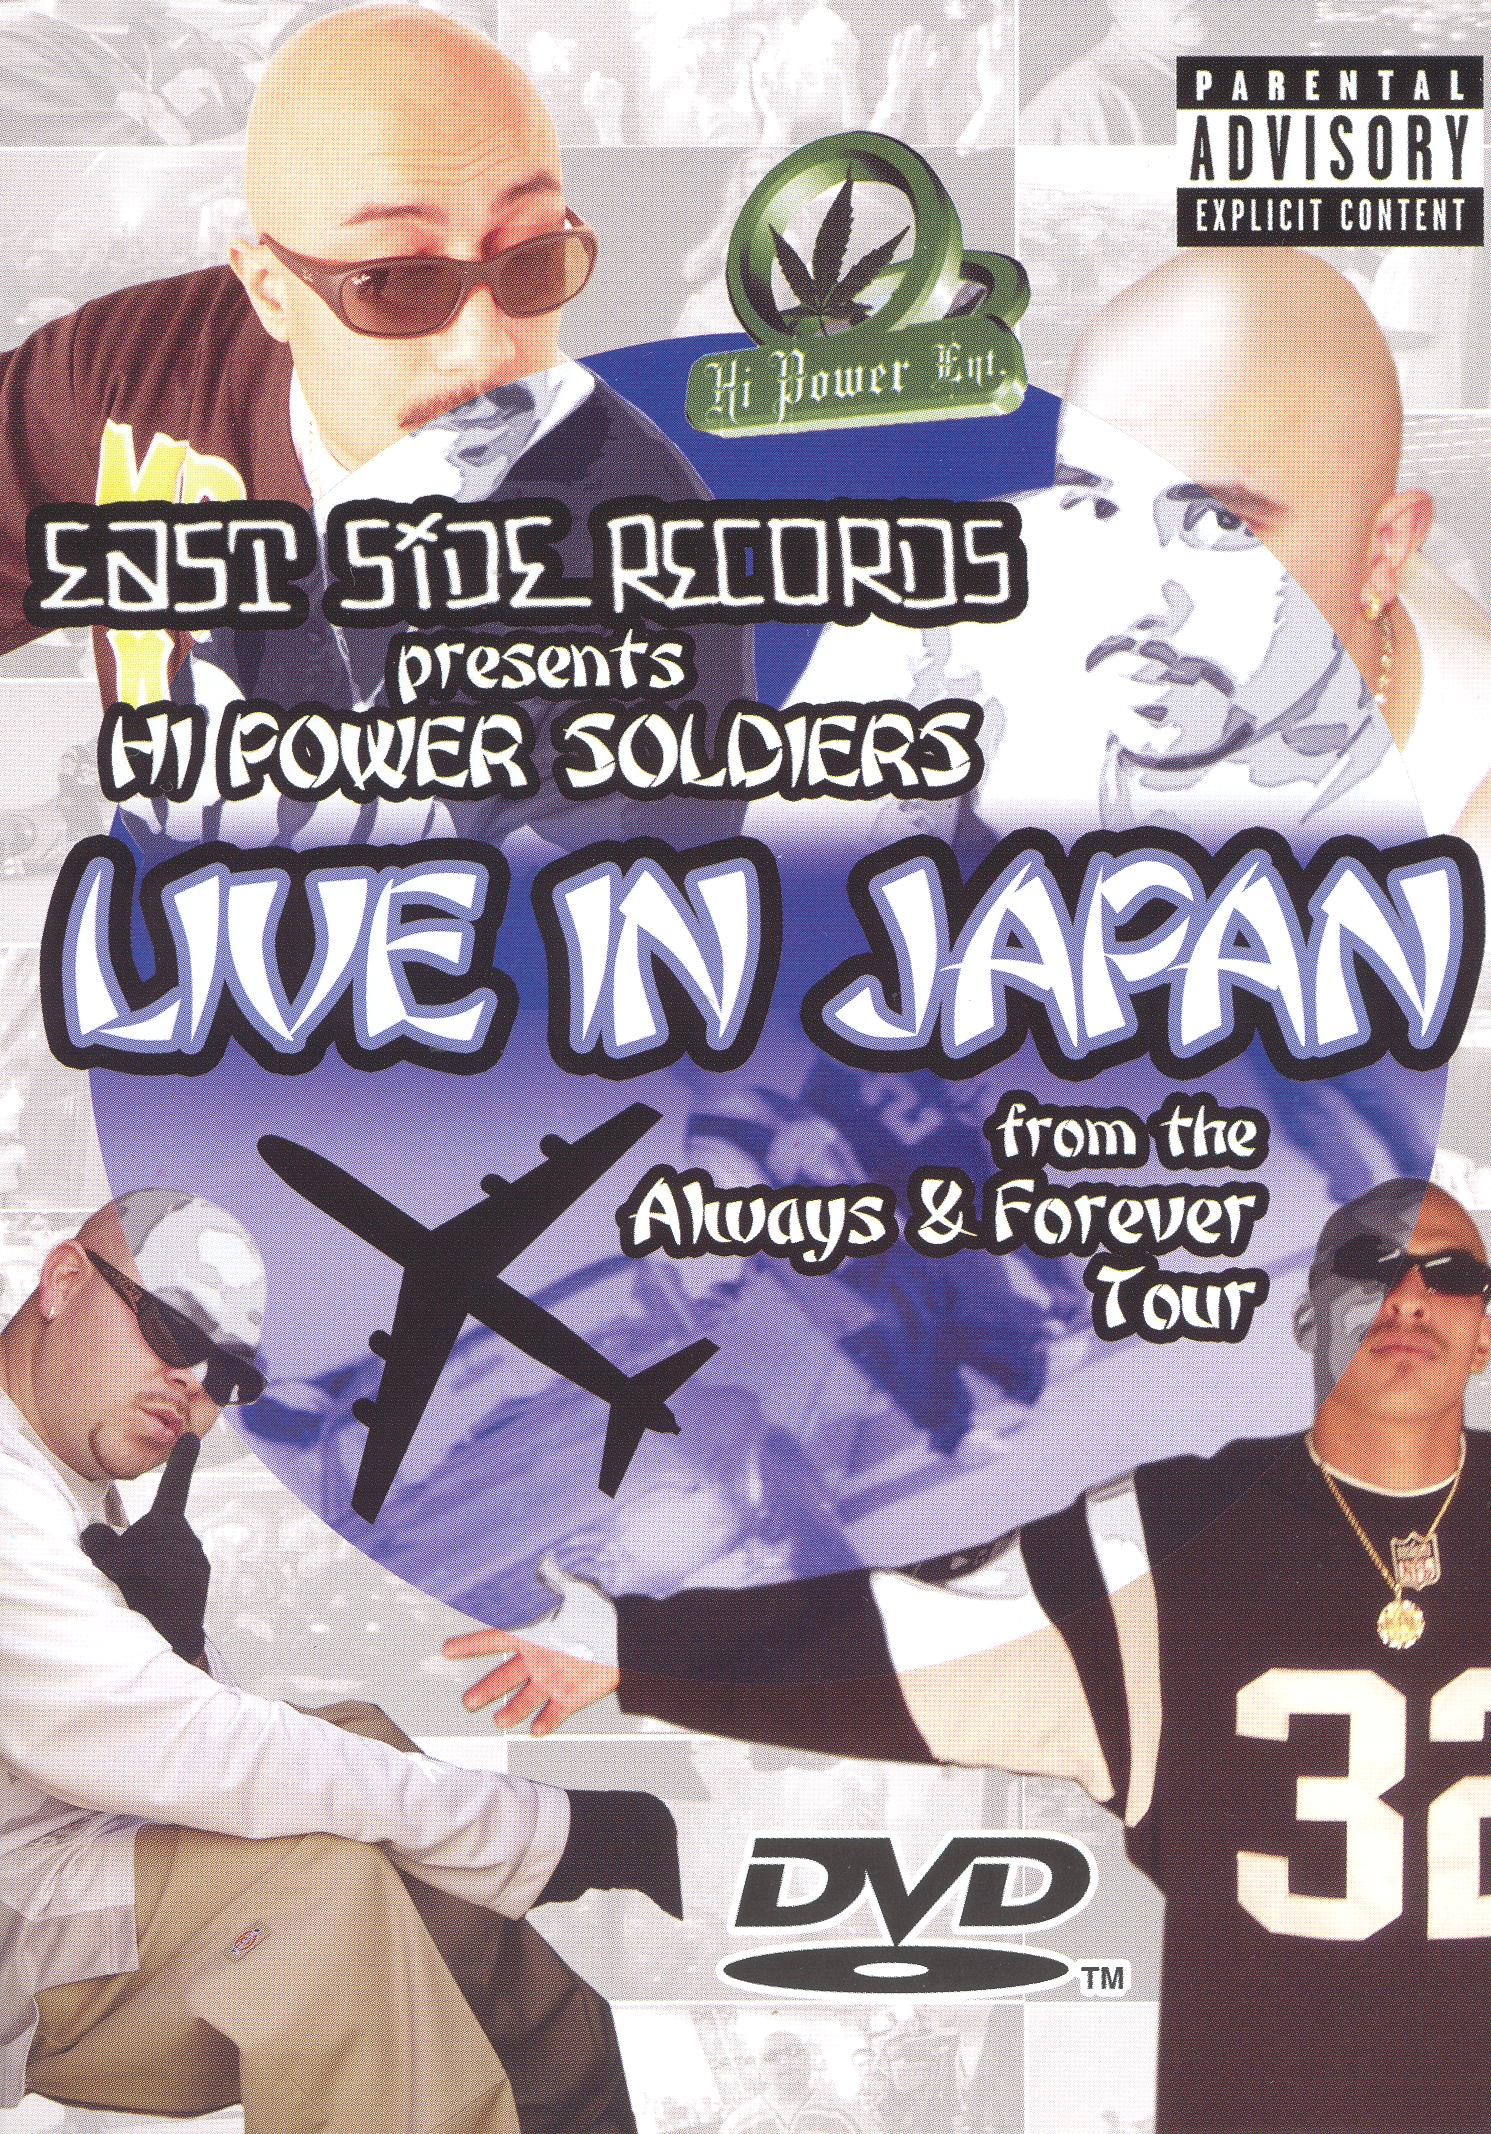 Mr. Capone-E and the Hi Power Soldiers: Live in Japan - Always and Forever Tour